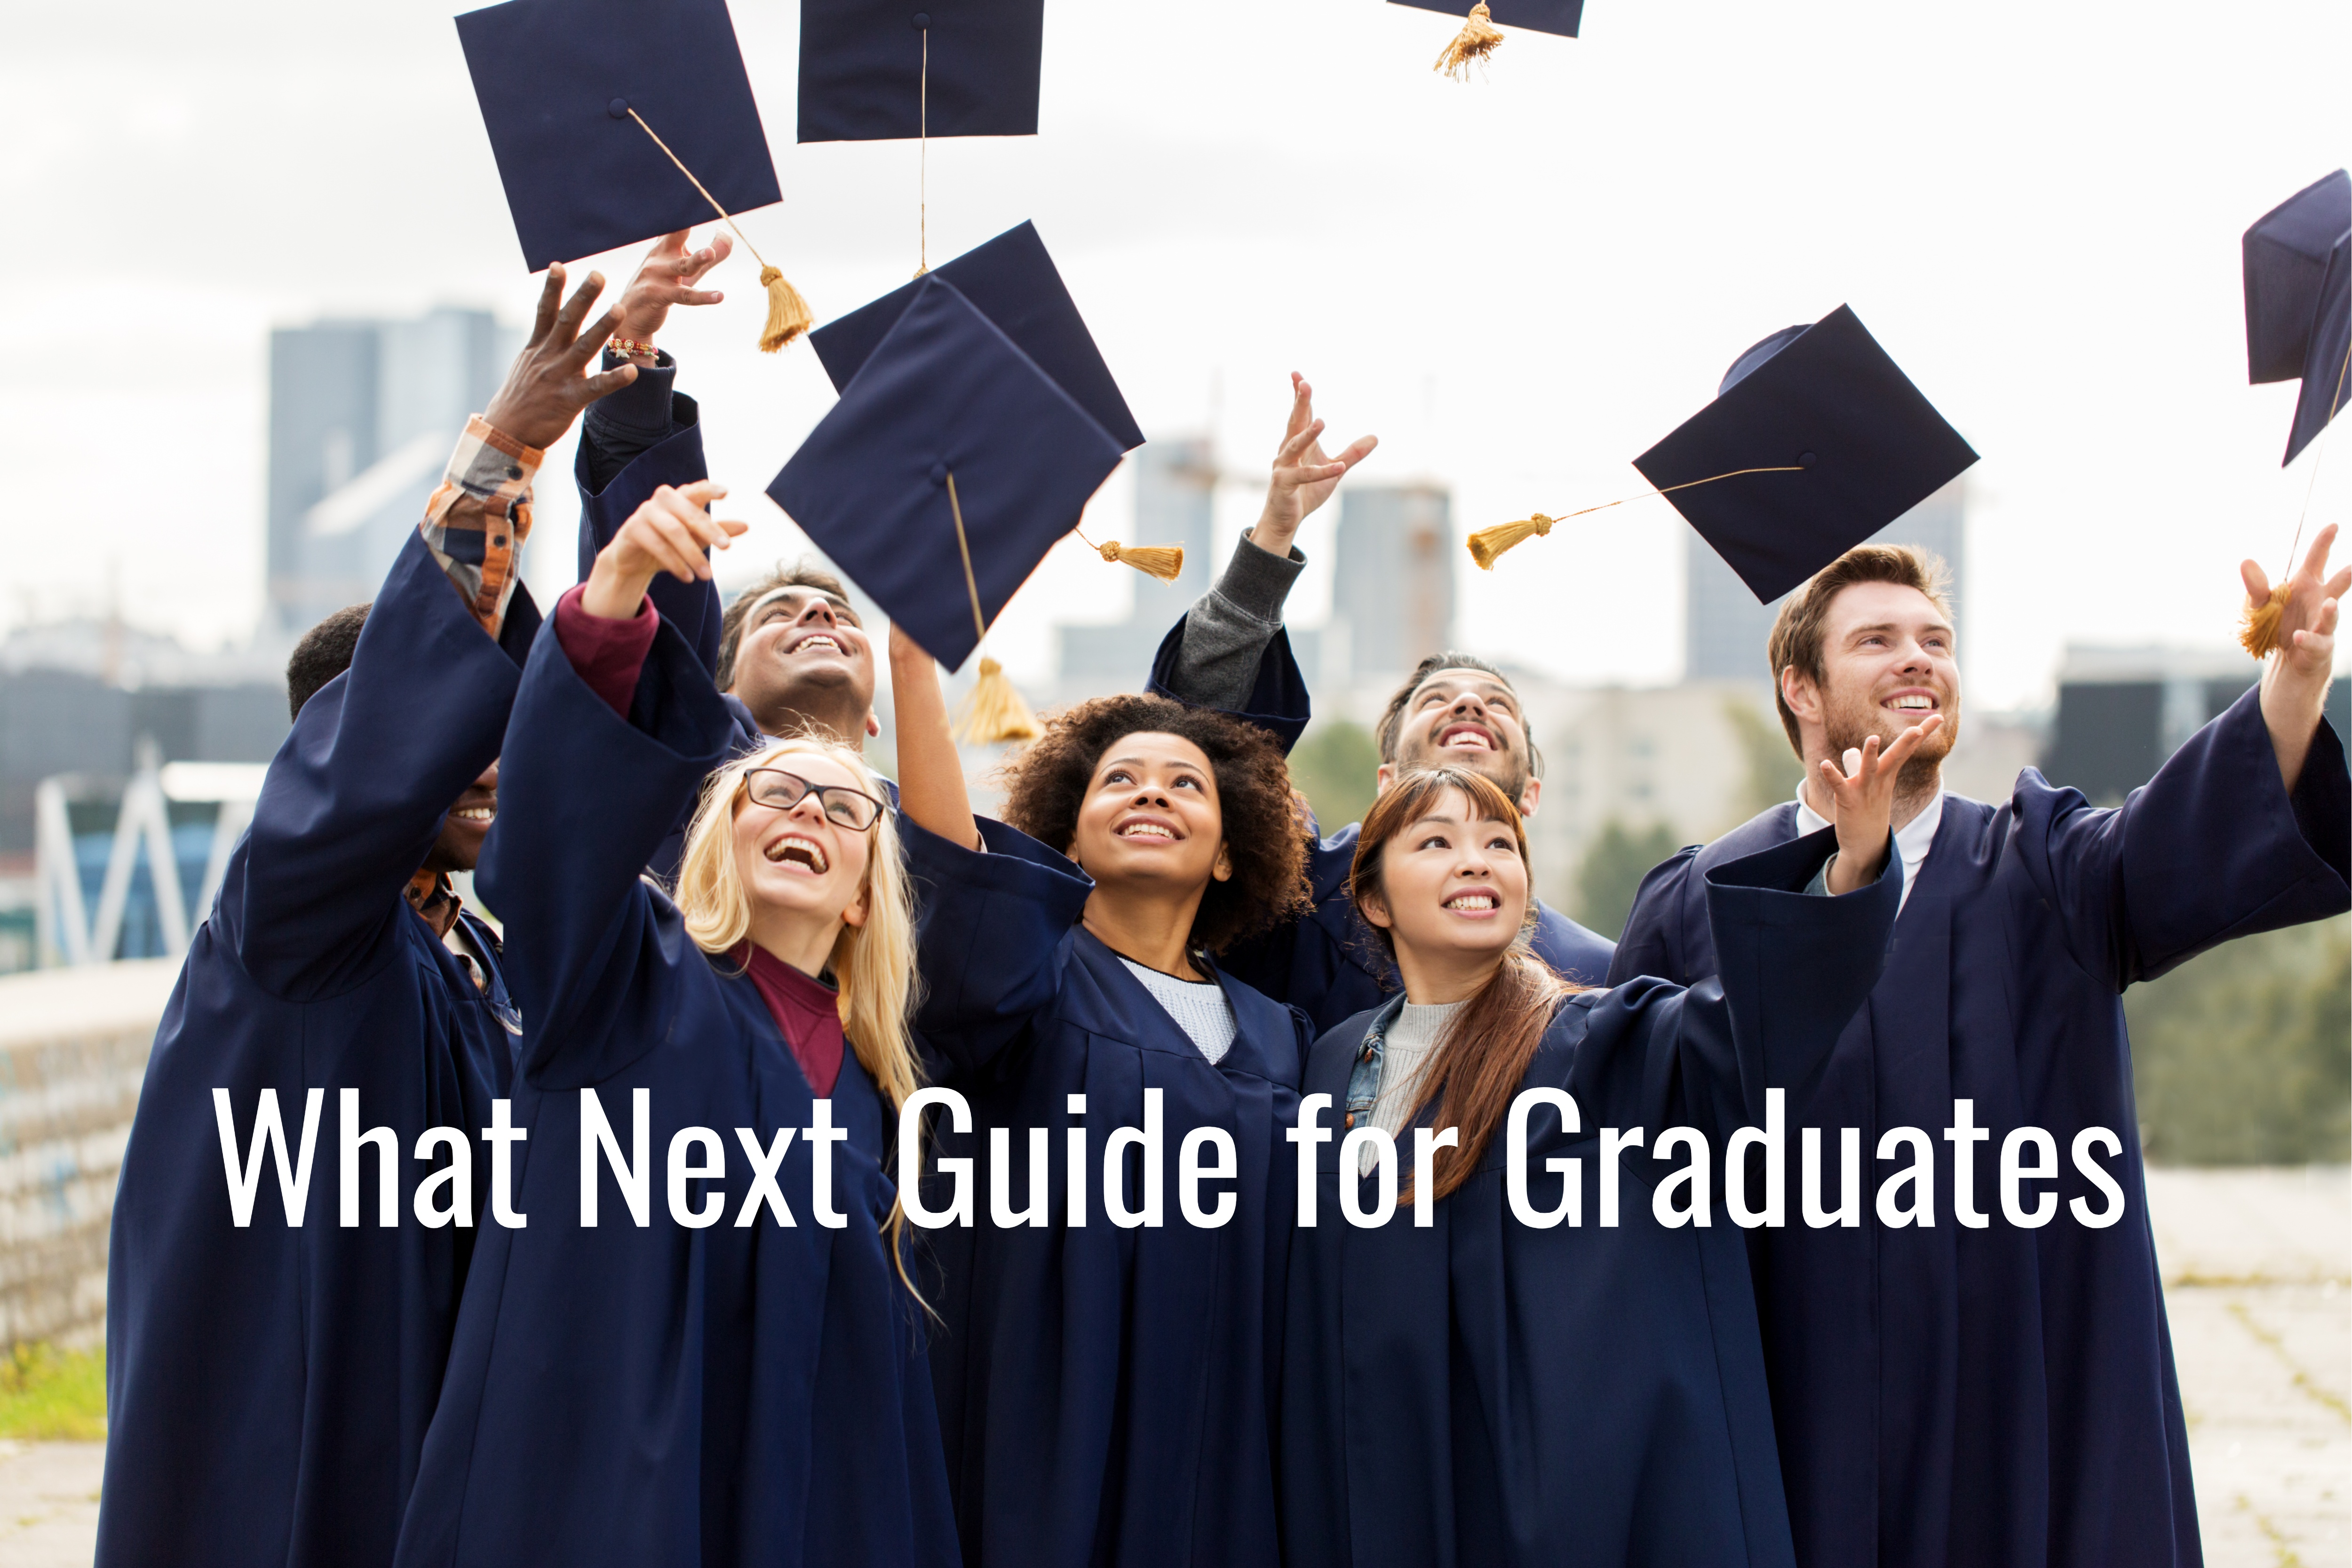 What Next Guide for Graduates